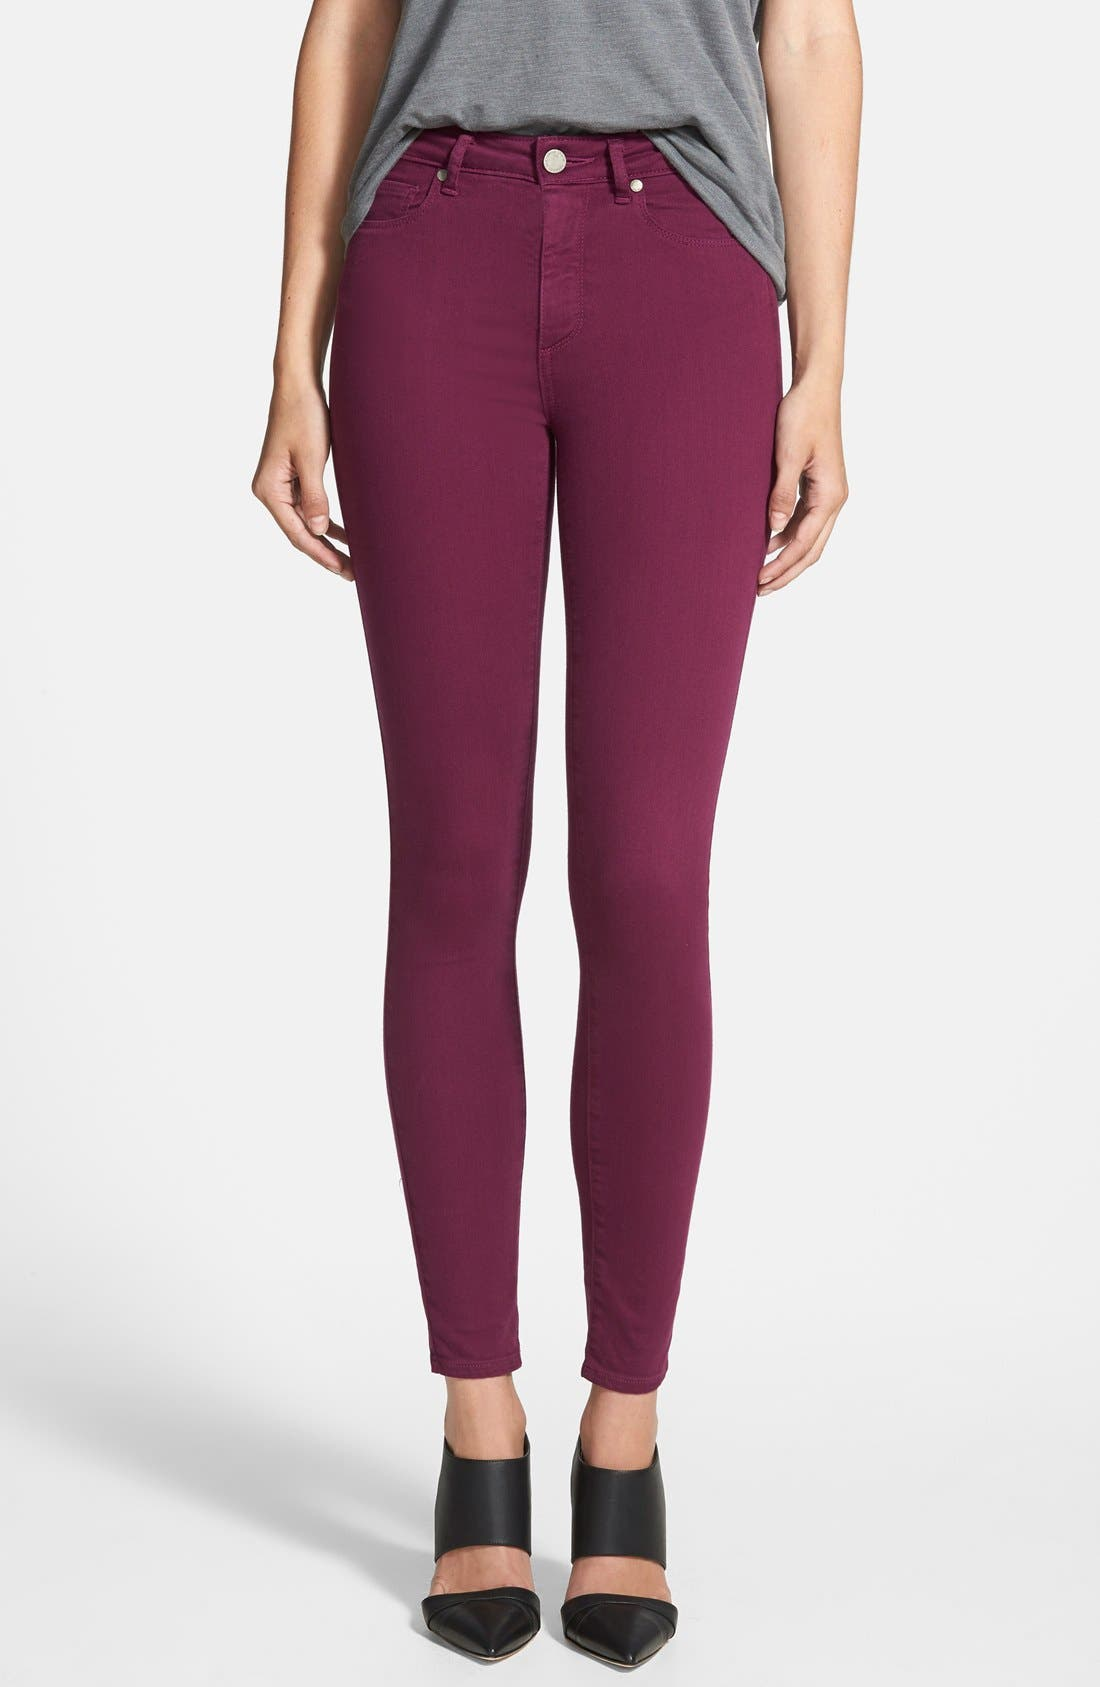 Alternate Image 1 Selected - Paige Denim 'Hoxton' Ultra Skinny Jeans (Passion Plum)